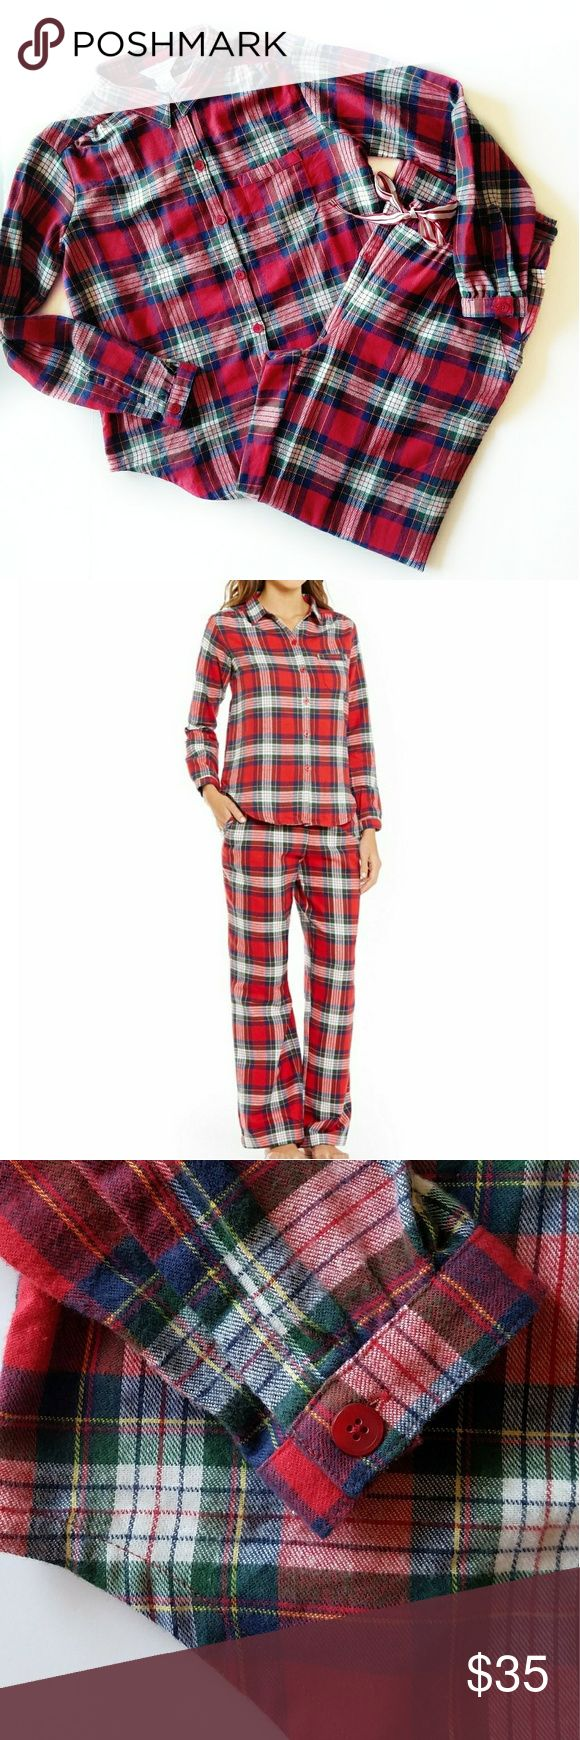 Plaid Portuguese flannel sleep set Sleep sense Portuguese flannel! Super soft and made of 100% cotton. Bright cherry color. Top has one chest pocket. Picture two and three is actual sleep set. I have two size smalls available. If you would like a different size, please ask me availability. These make great christmas morning pajamas! 💥NO TRADES sleep sense Intimates & Sleepwear Pajamas